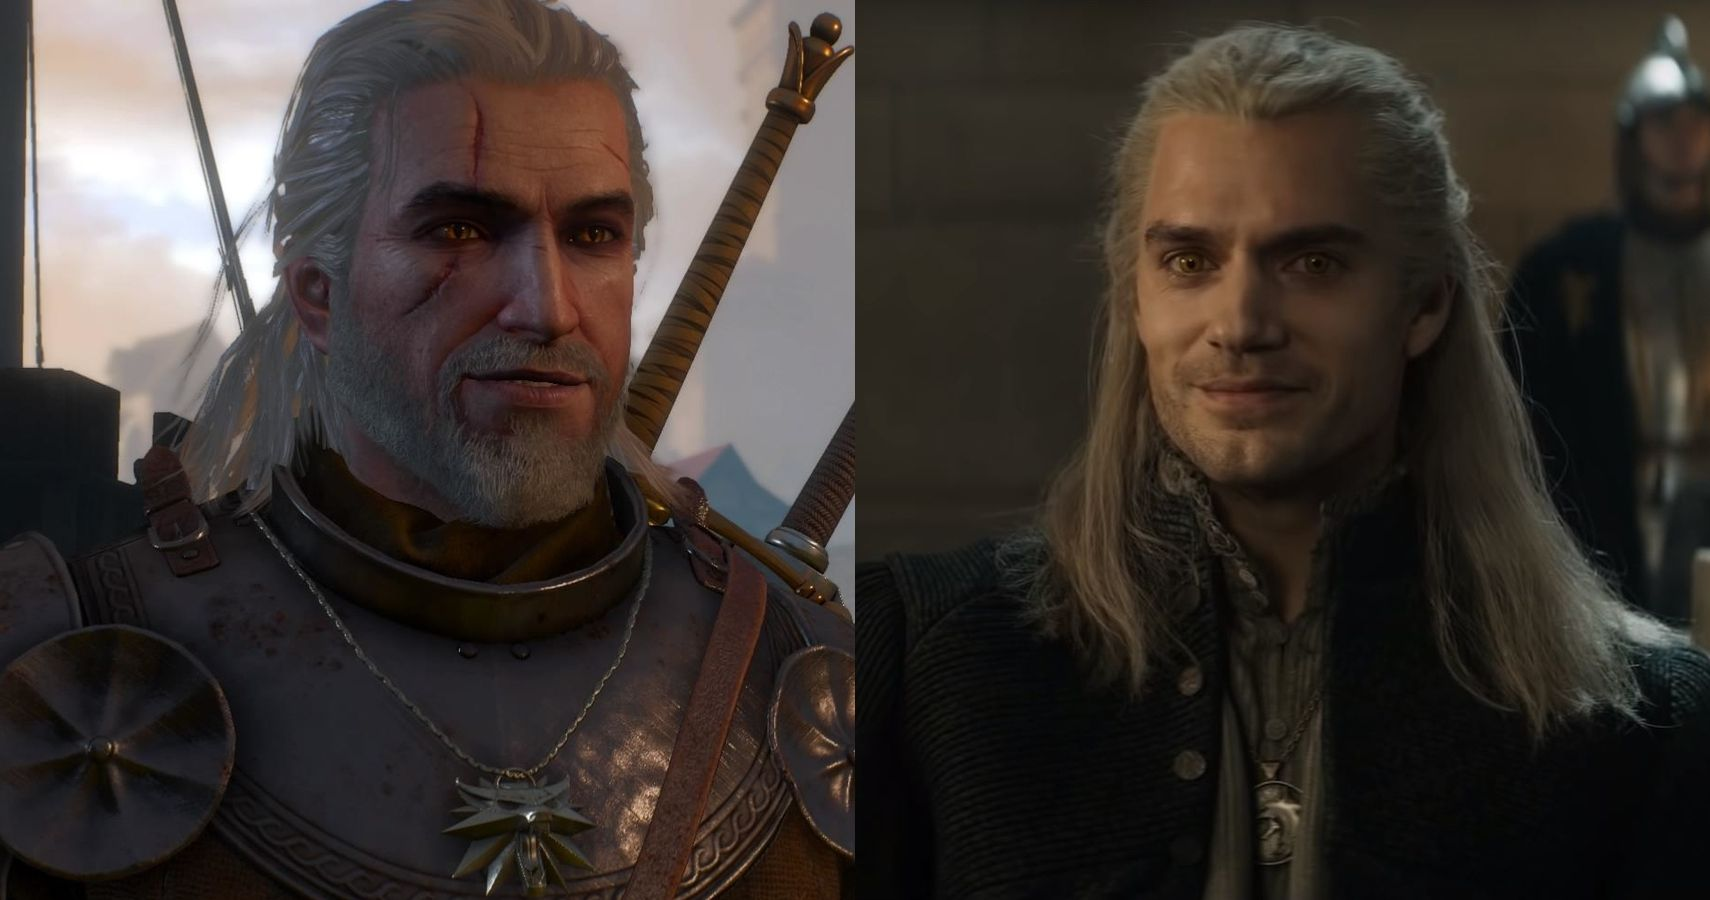 Henry Cavill Sent a Christmas Present To Geralt's Game Voice Actor